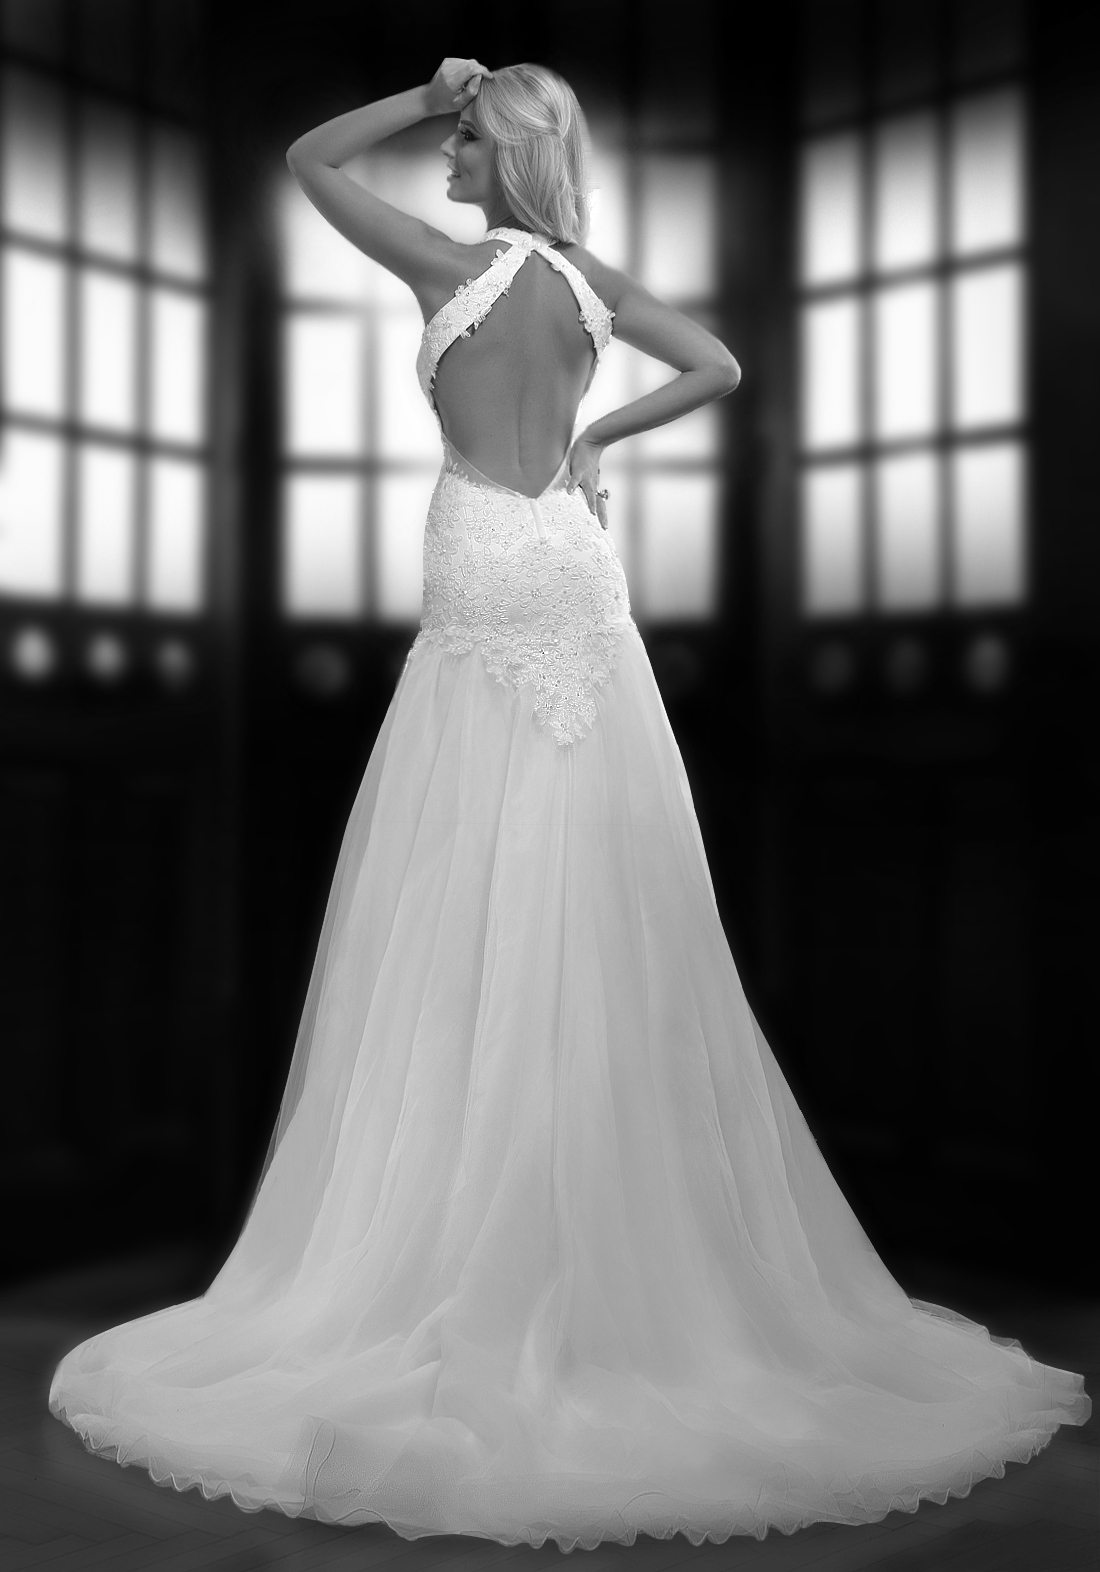 bien-savvy-wedding-dresses-2014-collection-37-01232014